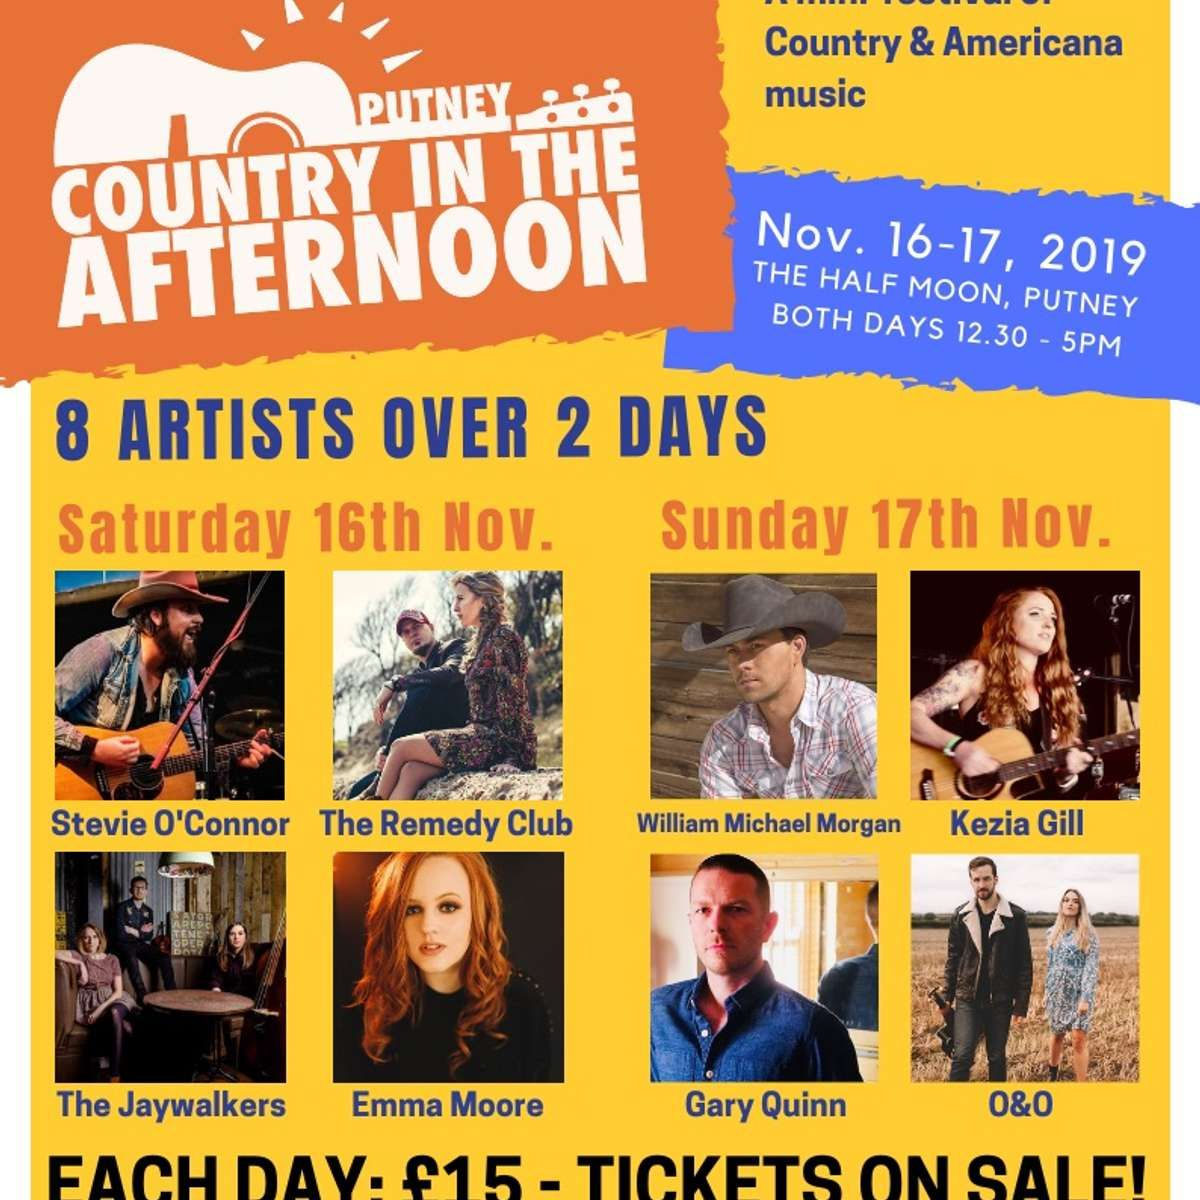 Country In The Afternoon Festival at Half Moon - Putney, London on 17 Nov  2019